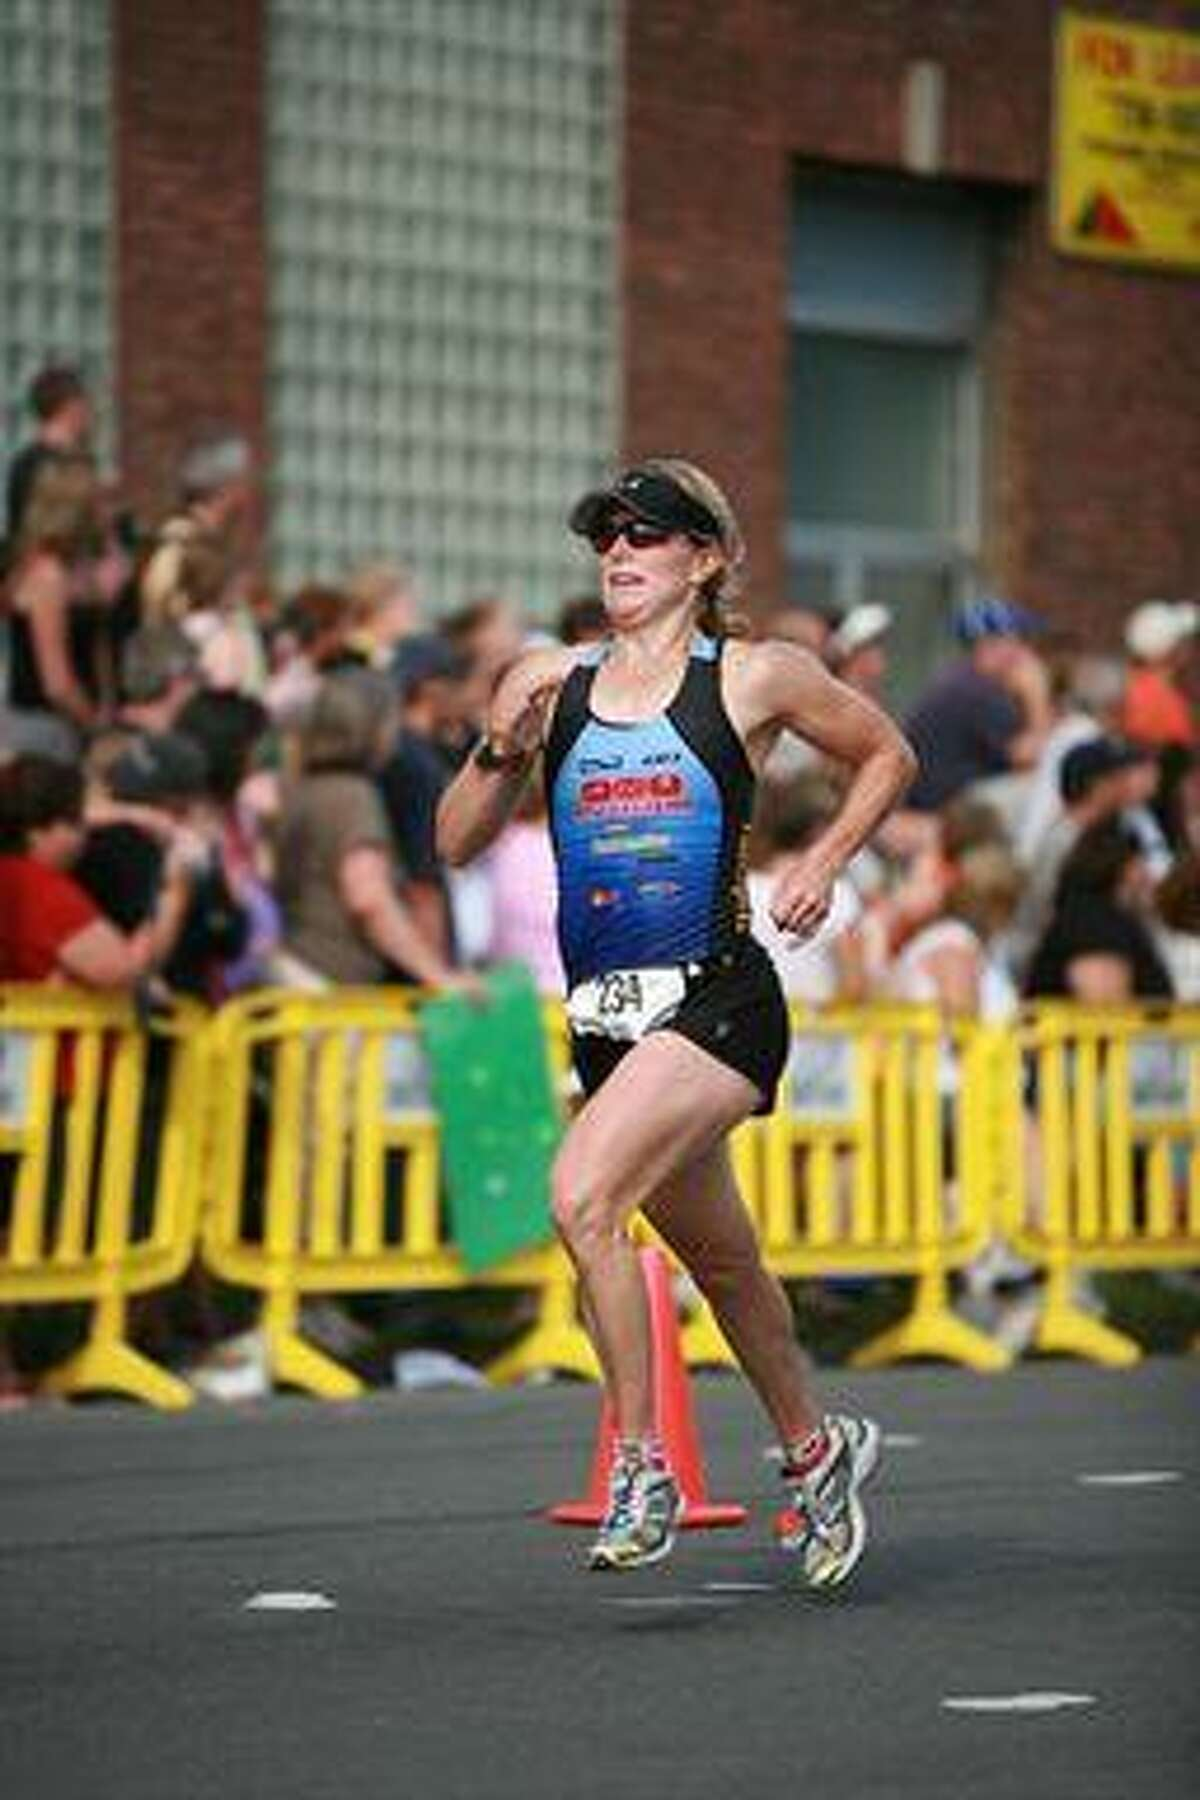 Submitted Photo MaryBeth Romagnoli of Cazenovia qualified for the Ford Ironman World Championship triathlon in Kona, Hawaii. The Canastota alum began running in seventh grade for current Raiders AD Andy Pino.